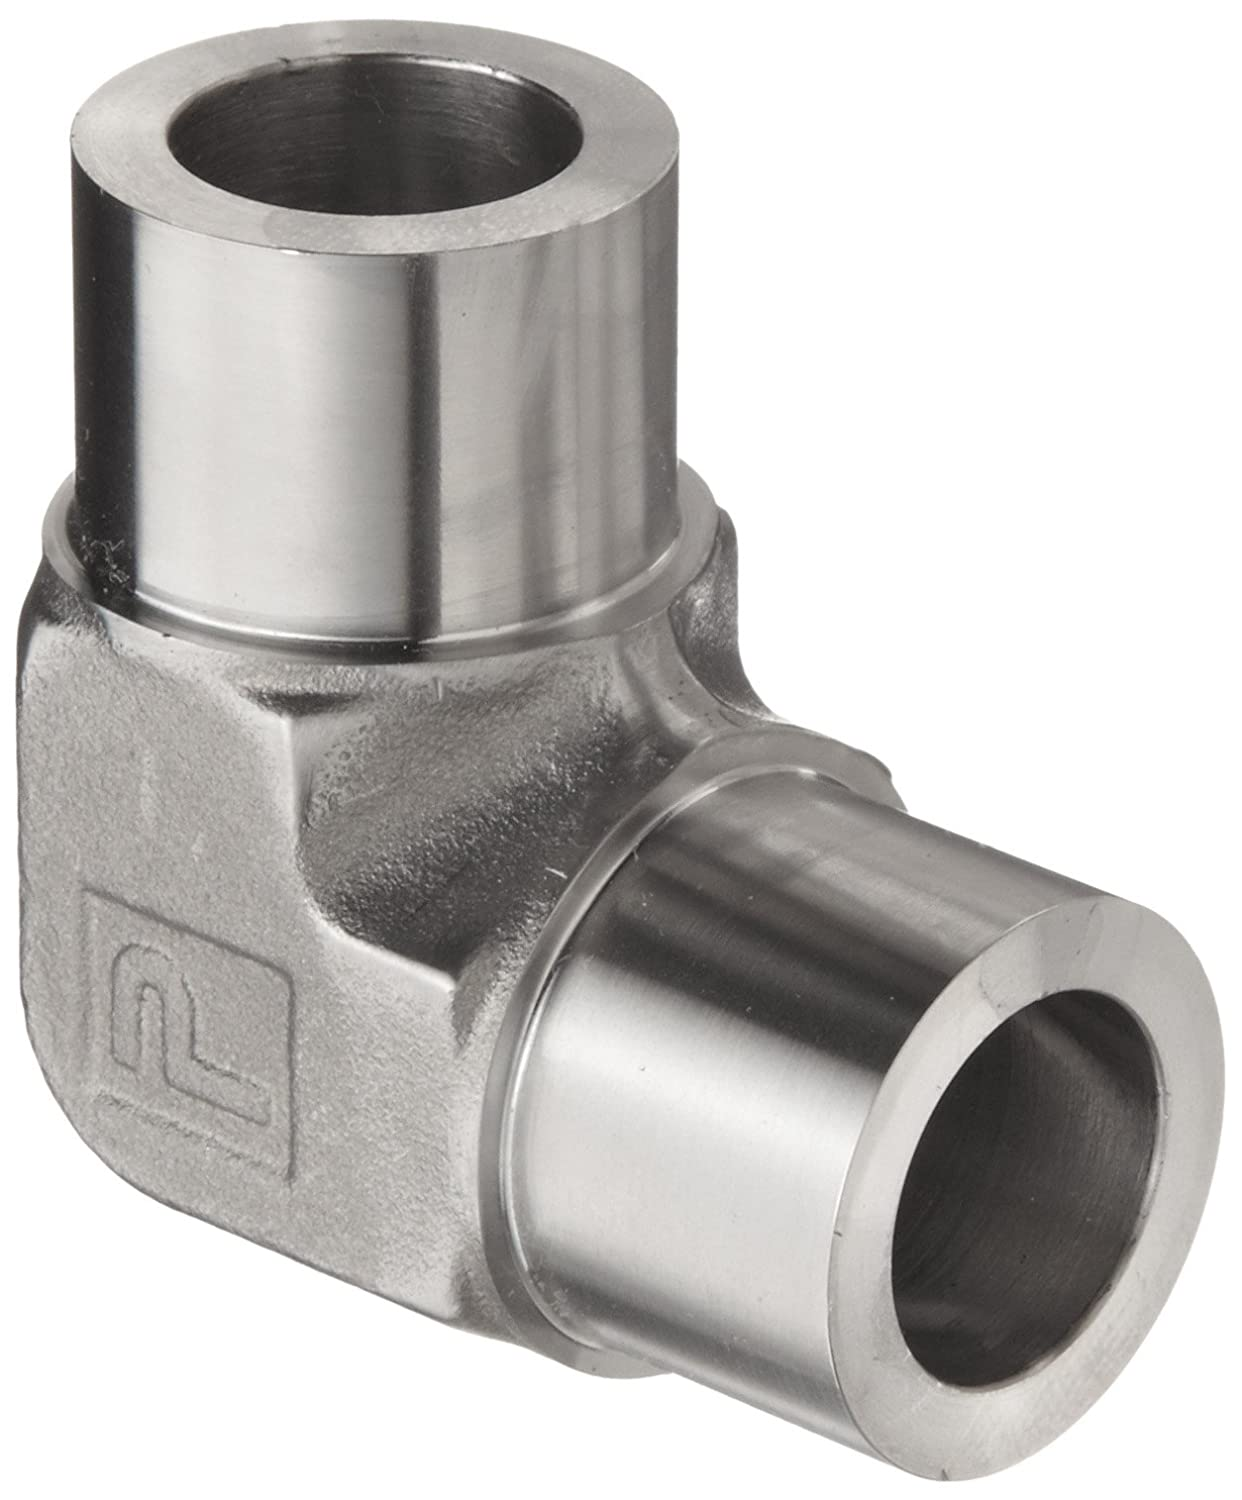 """New 1-1//4/"""" npt Forged Stainless Steel 90° Elbow Pipe Fitting 3000 psi 316 SS"""